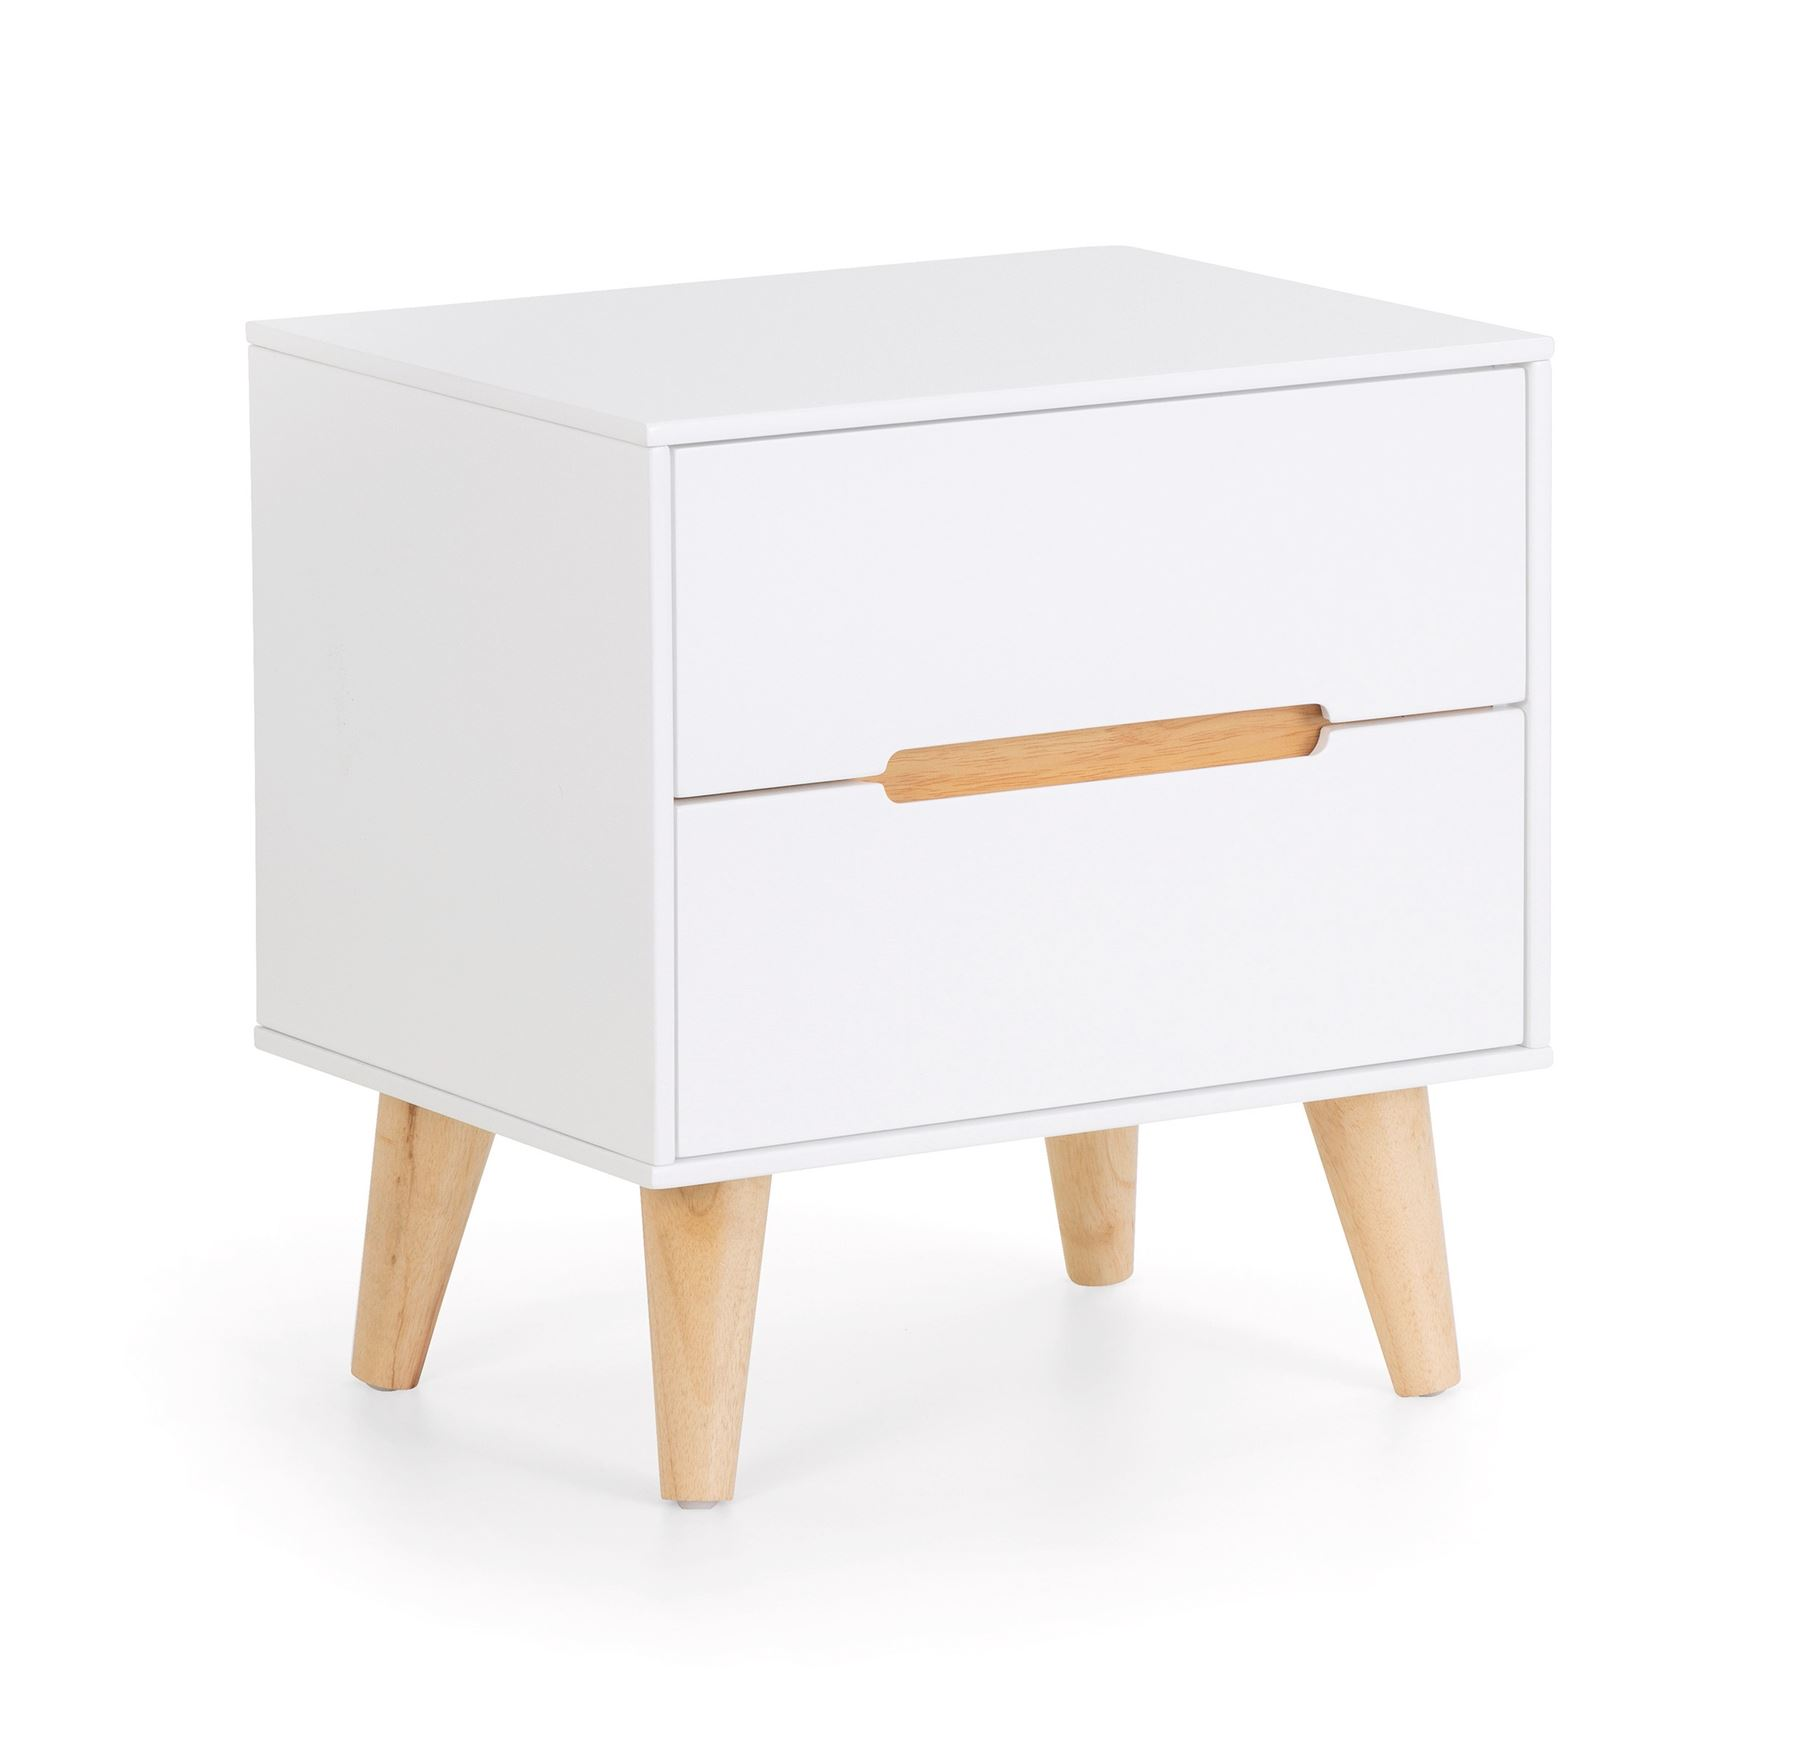 Julian Bowen Alicia 2 Drawer Bedside Chest Scandinavian Modern Retro White & Oak